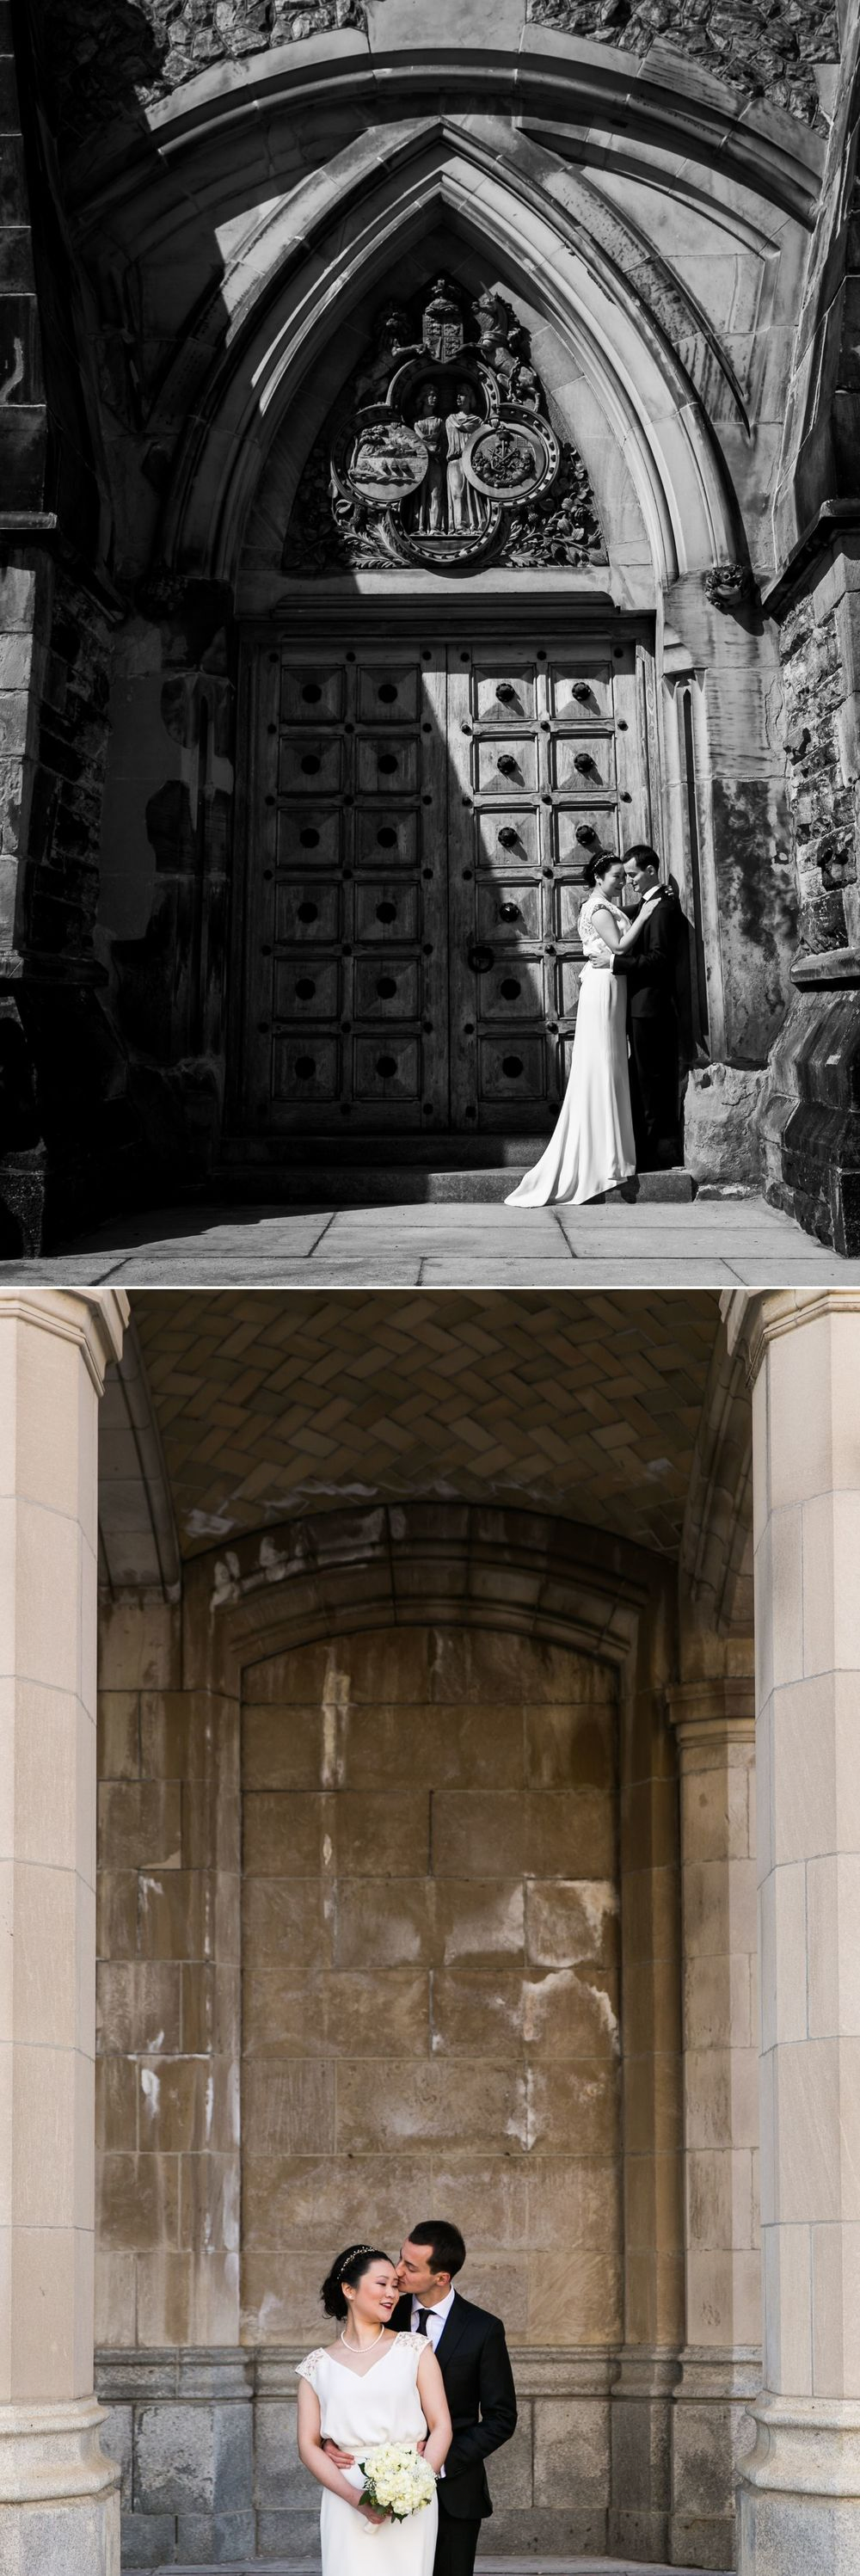 The bride and groom having their formal portraits taken outside the Parliament buildings and the Chateau Laurier